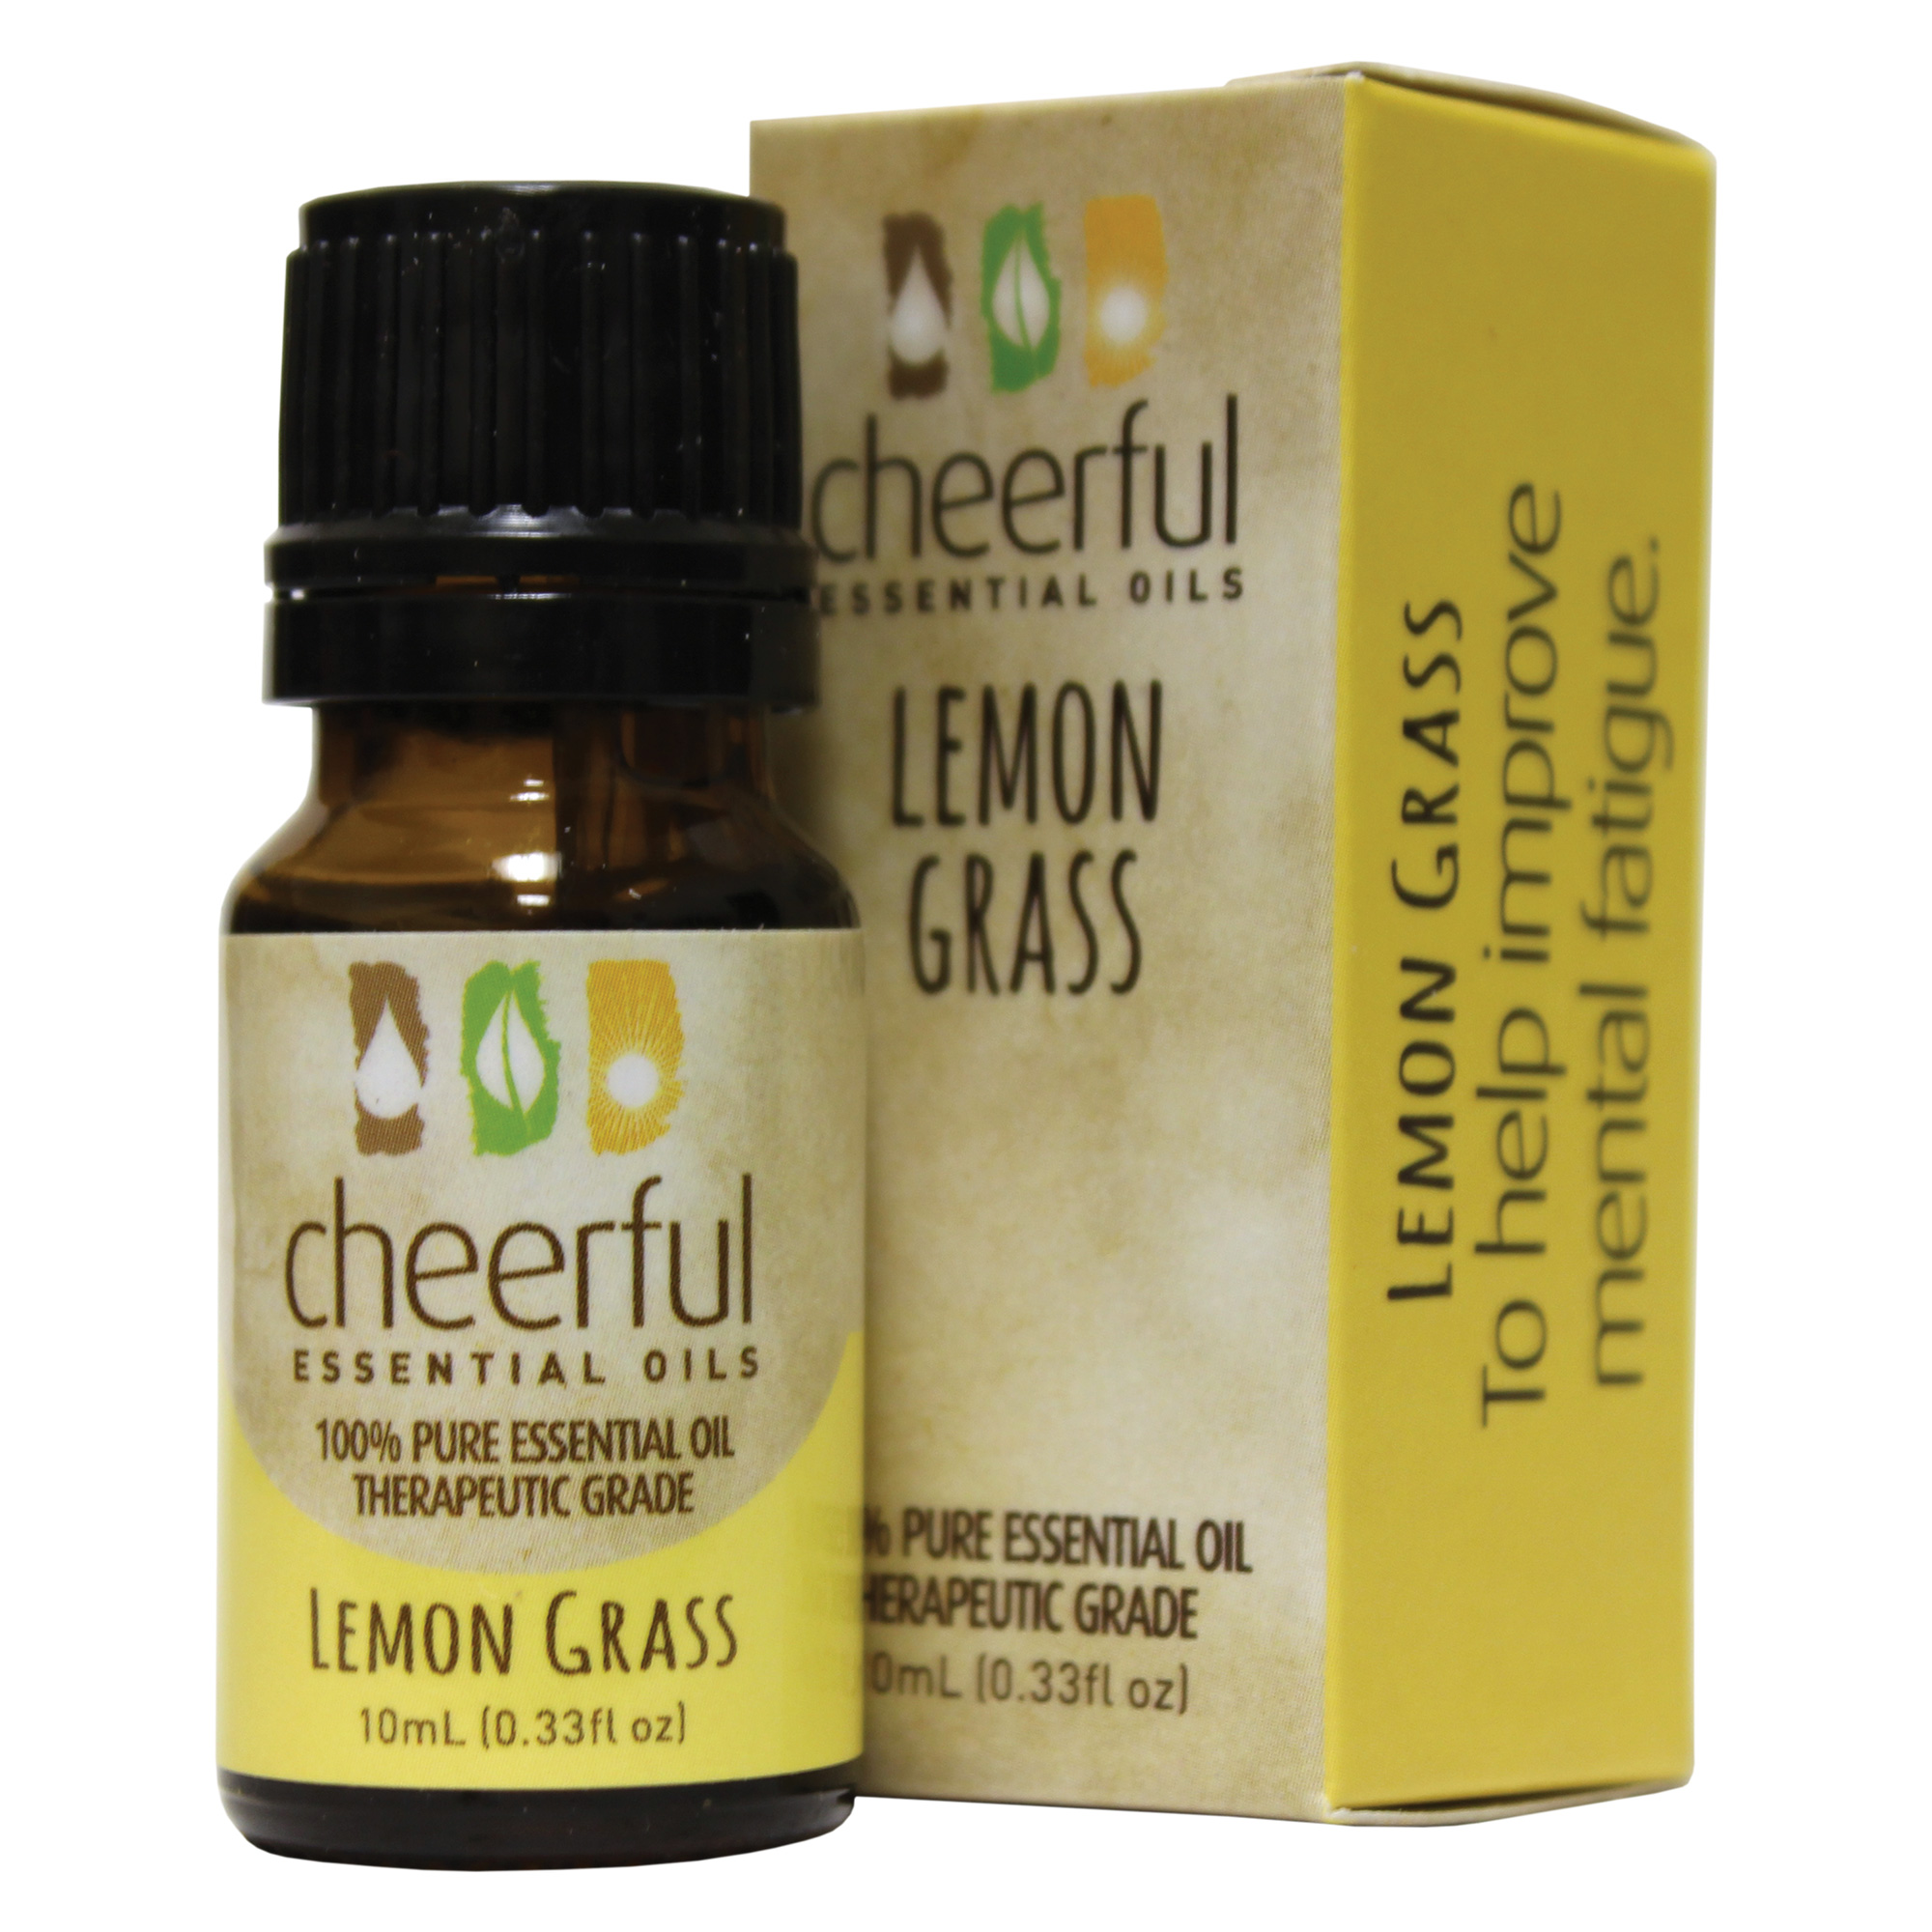 LEMON GRASS ESSENTIAL OIL 10 ML UPC# 674623018133